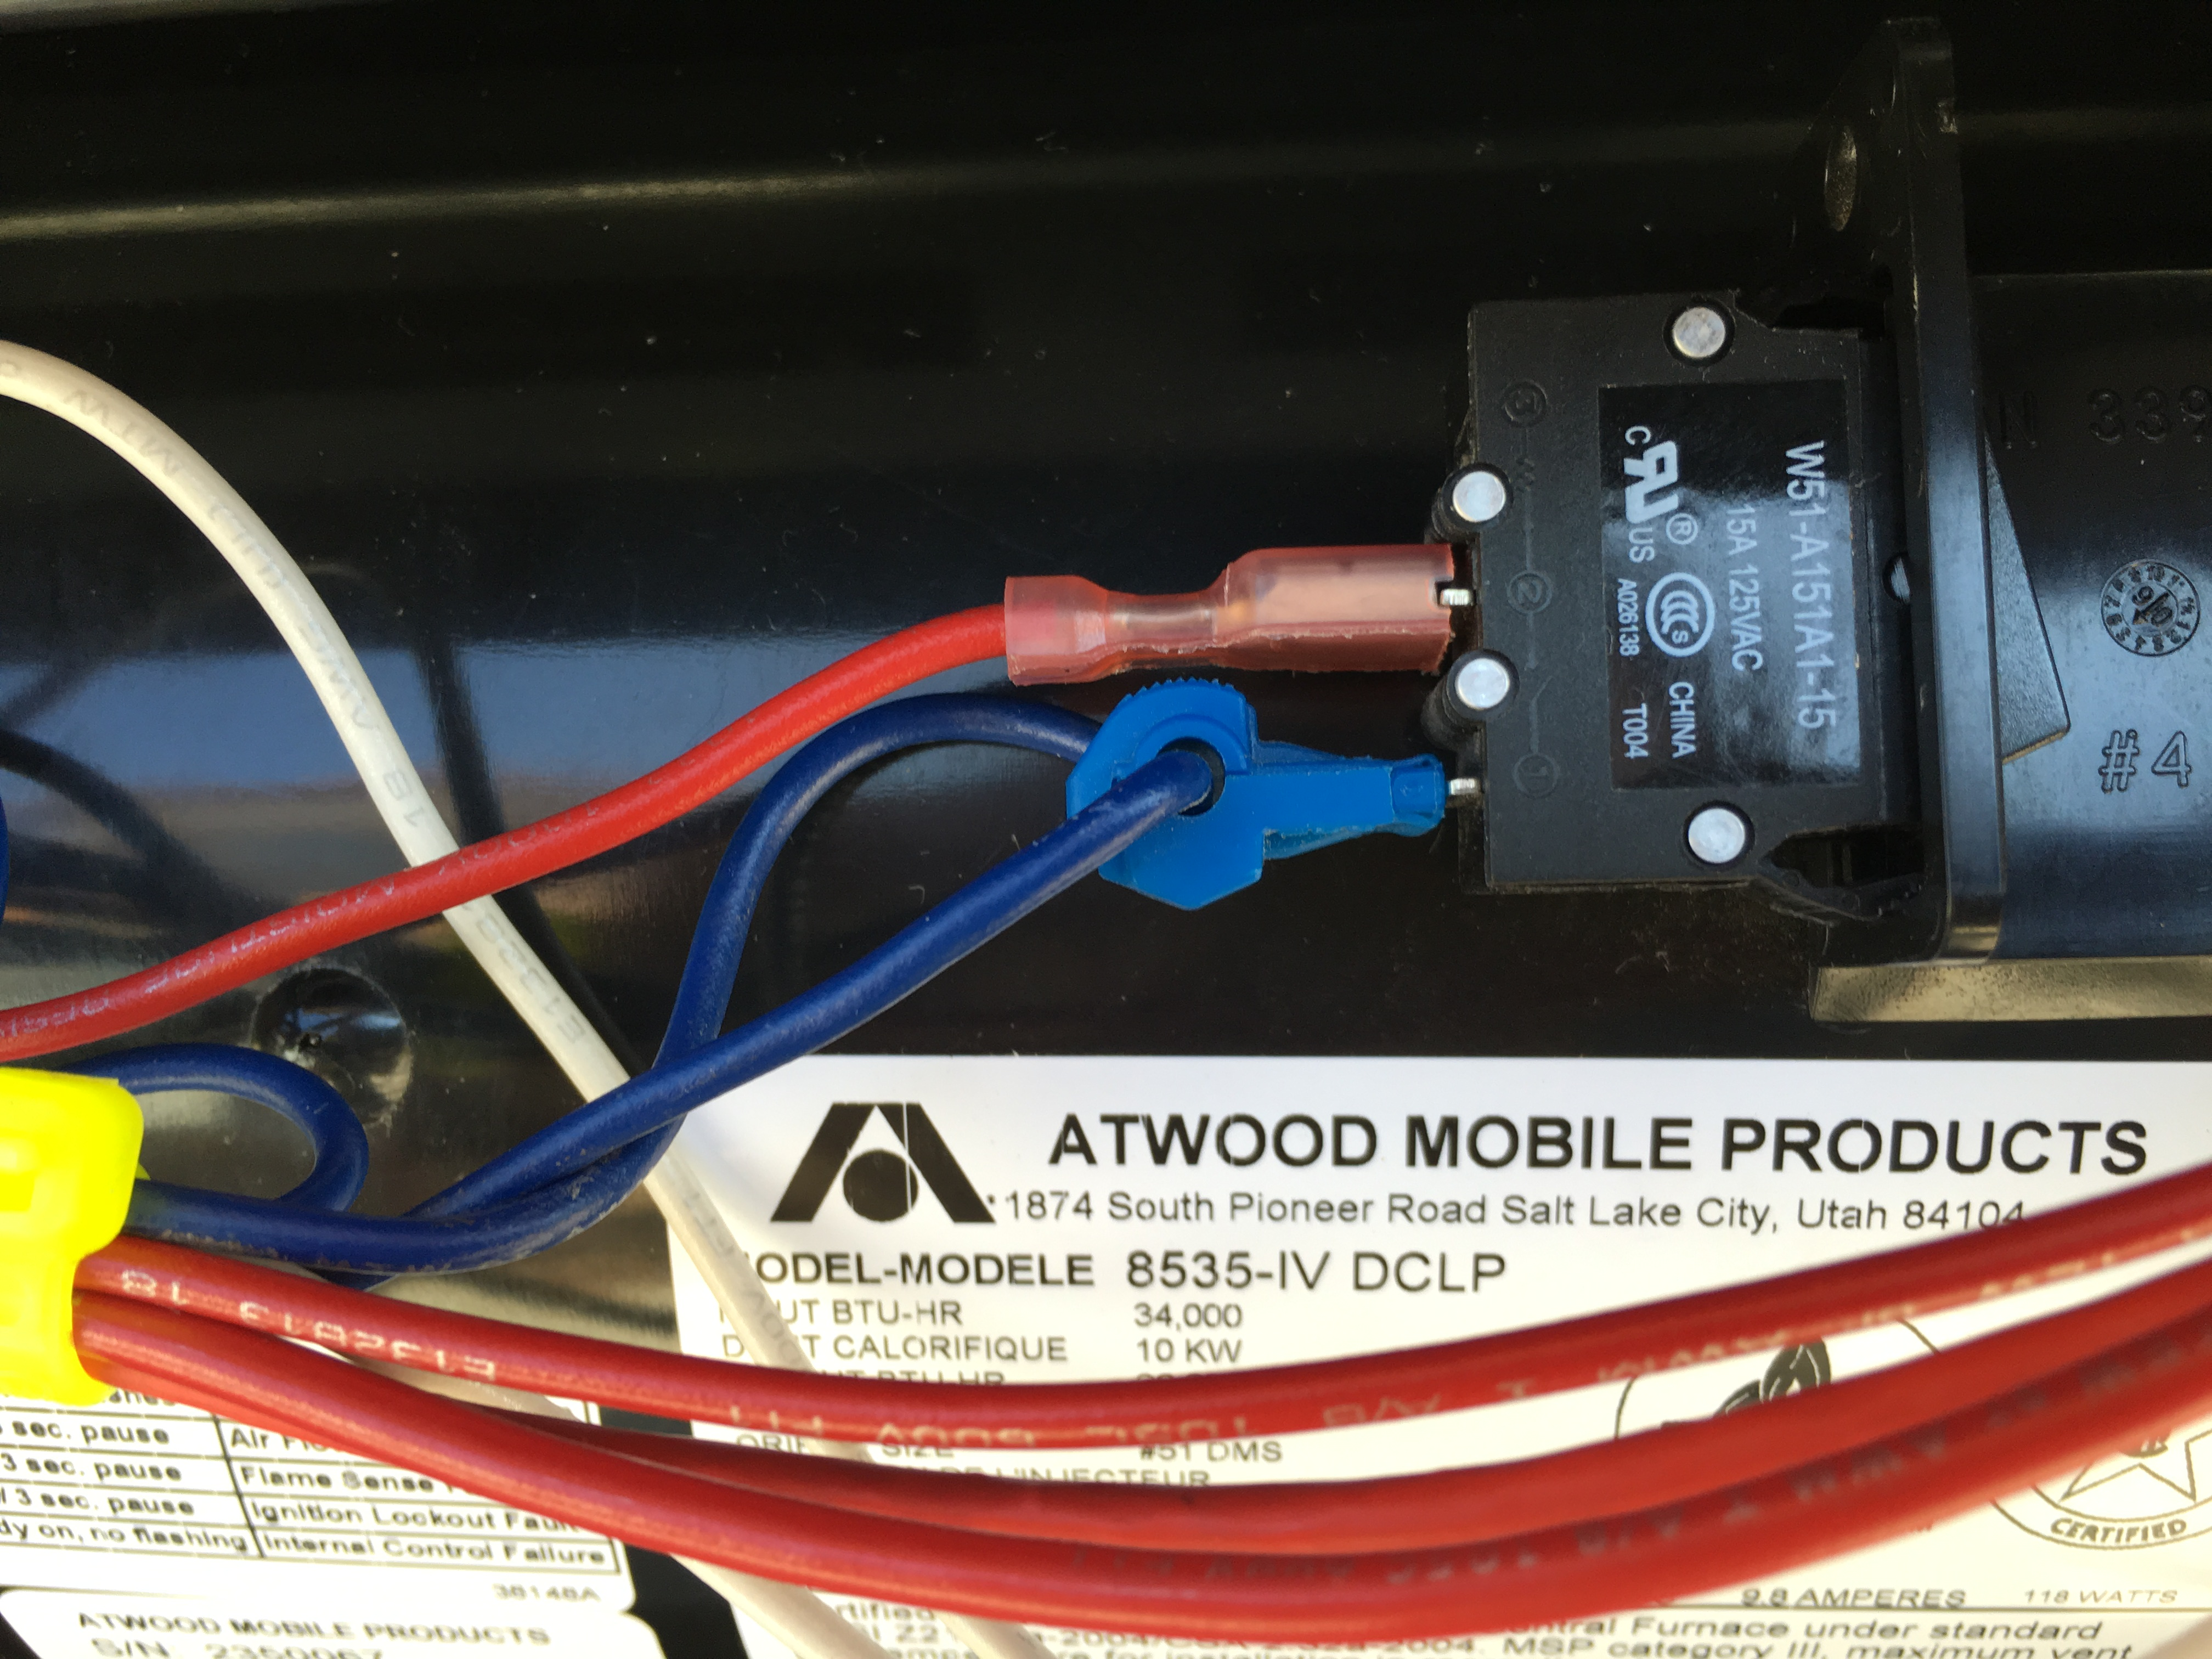 Just Replaced The Blower Fan On My Atwood 8535 Iv Dclp And Have Excalibur Wiring Diagram 2